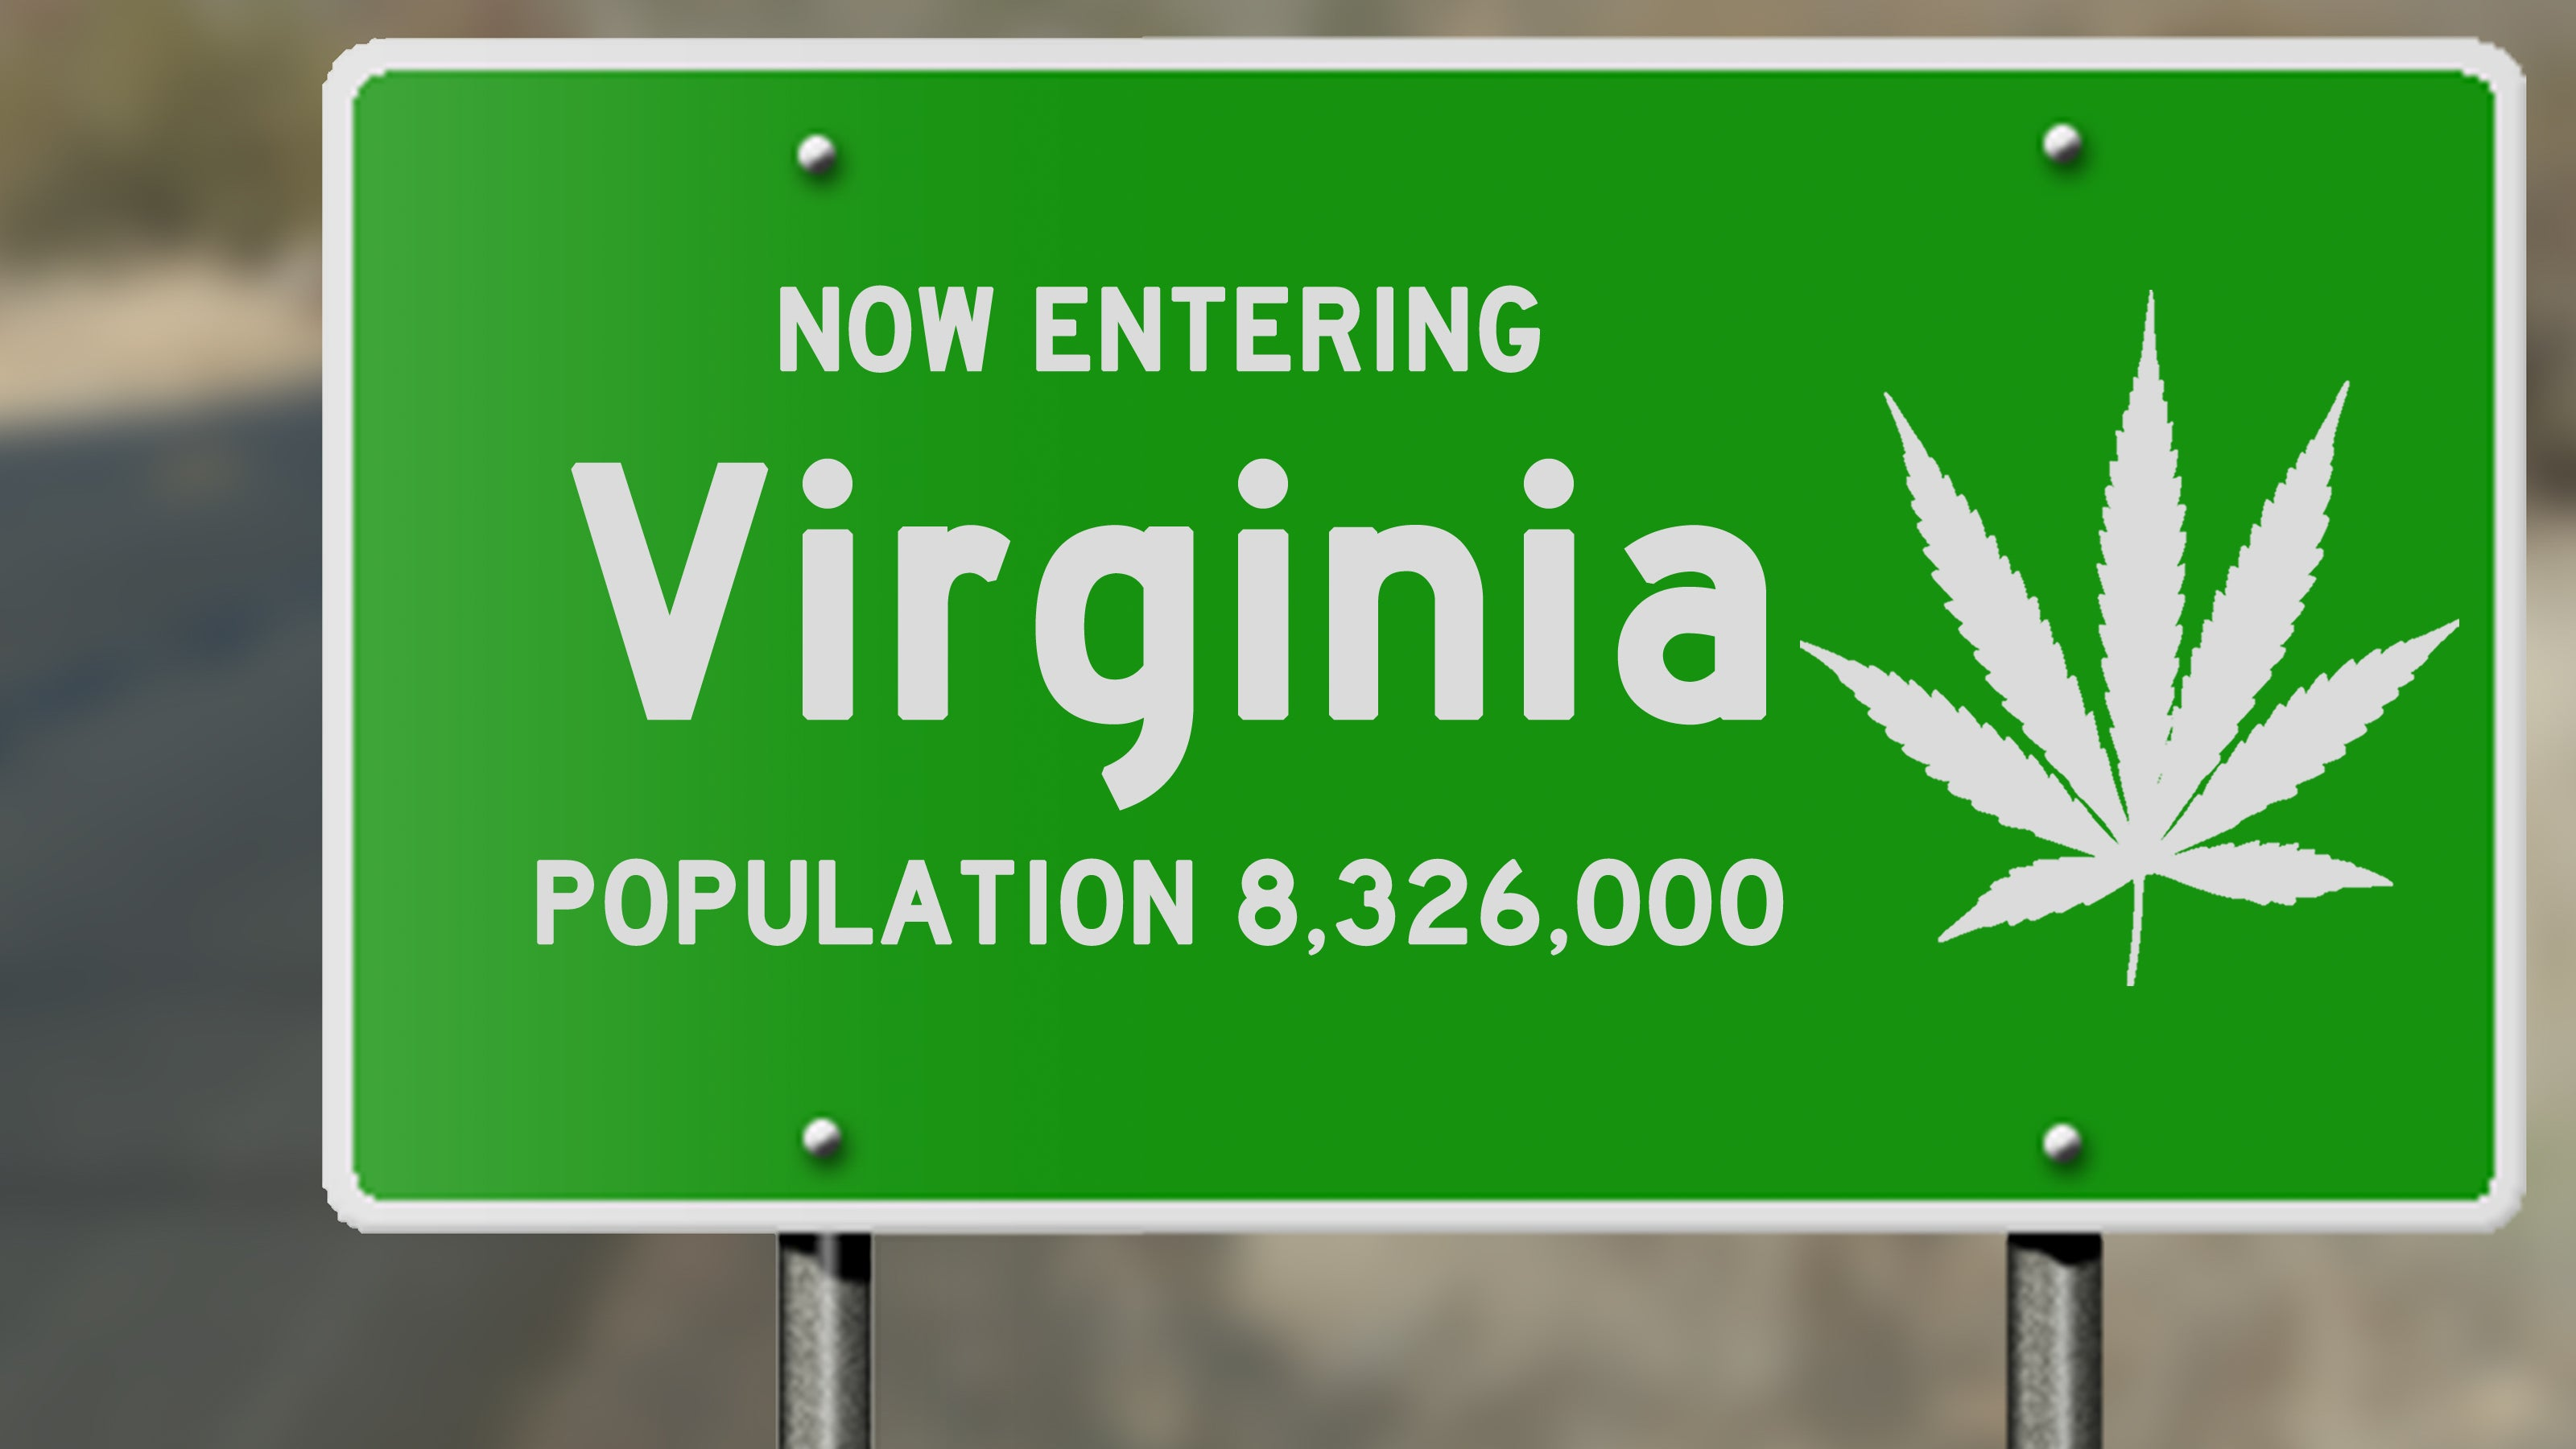 The Pot Stock Poised to Be the Biggest Winner With Virginia's Marijuana Legalization